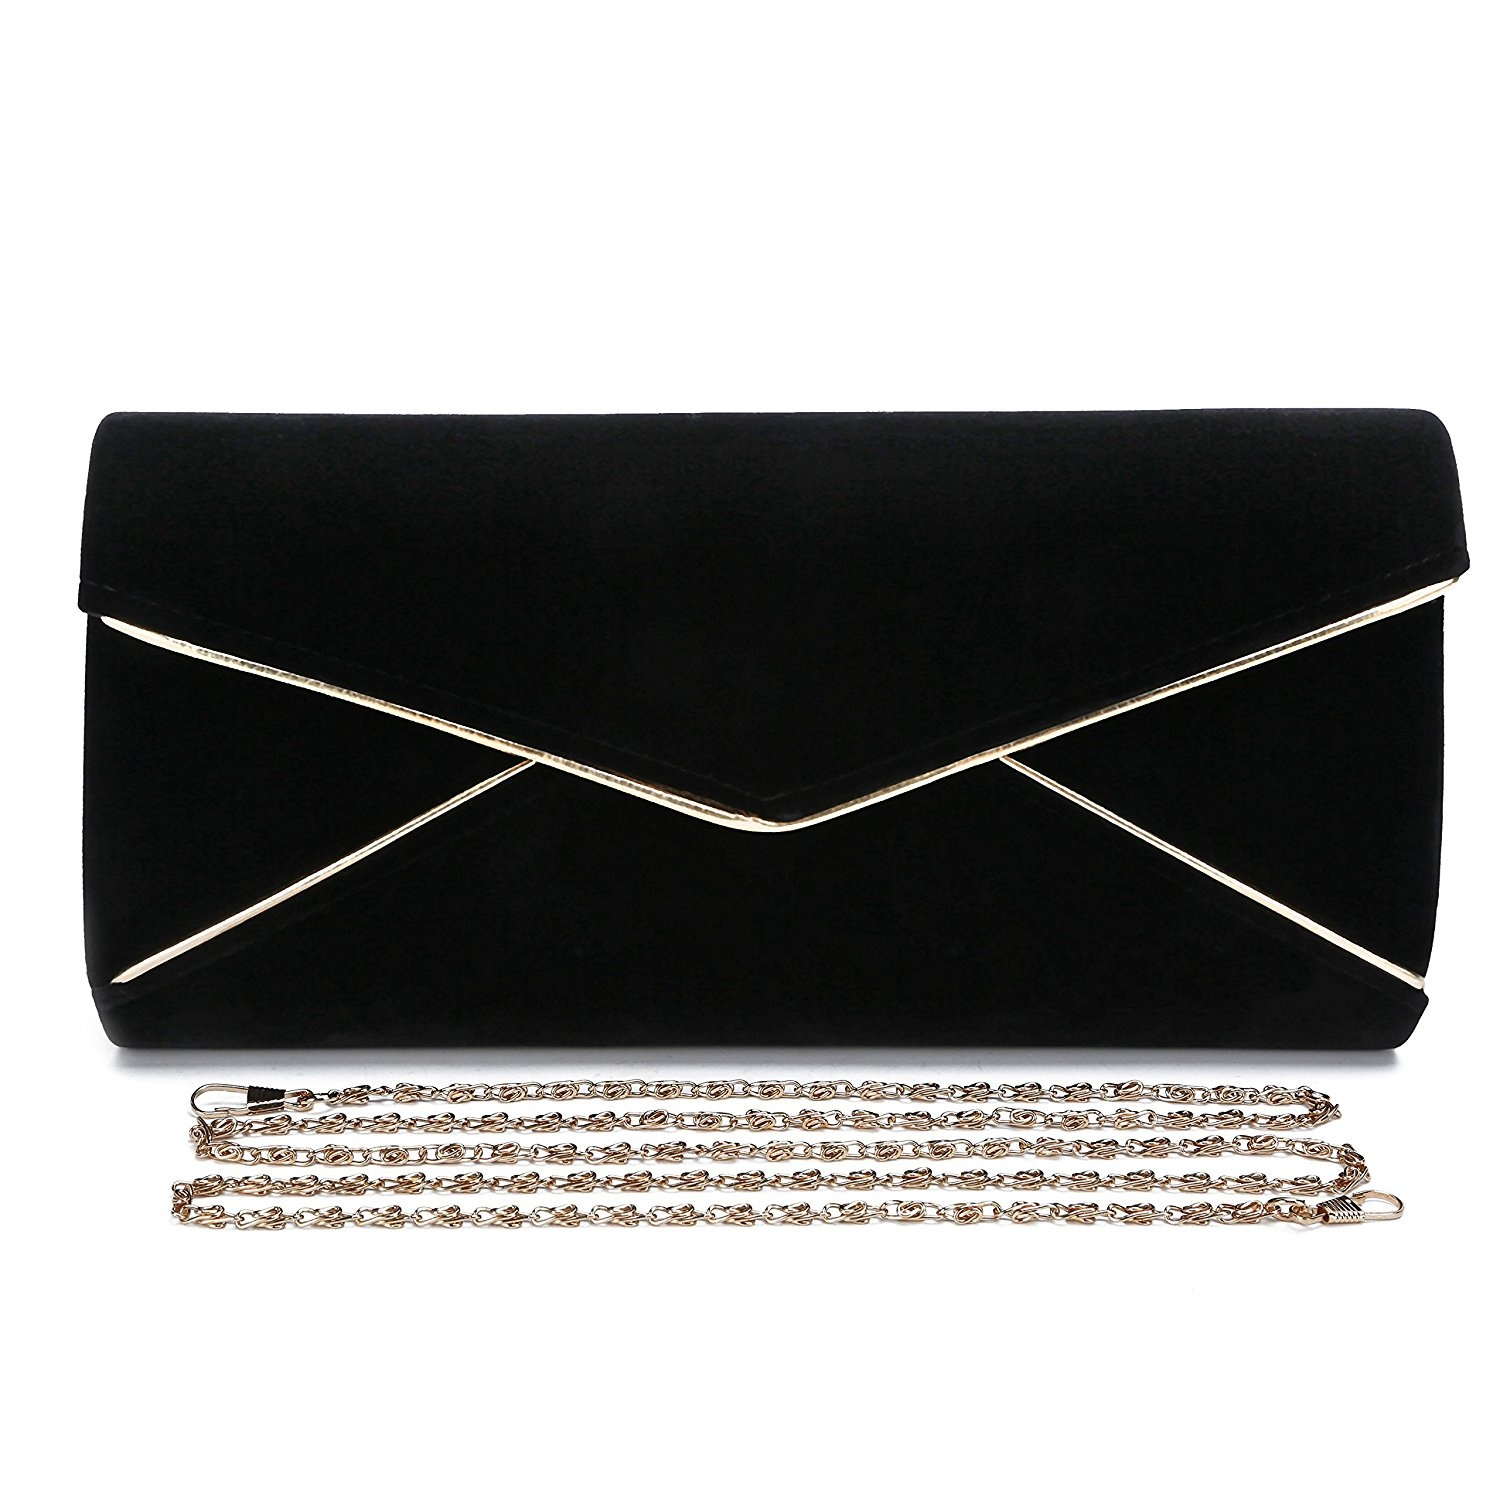 a9968f0a52 VESIA Soft Satin Clutch Bag Wedding Bridal Handbags Concise and Elegant  Women s Tote Bags by VESIA - Shop Online for Bags in Fiji